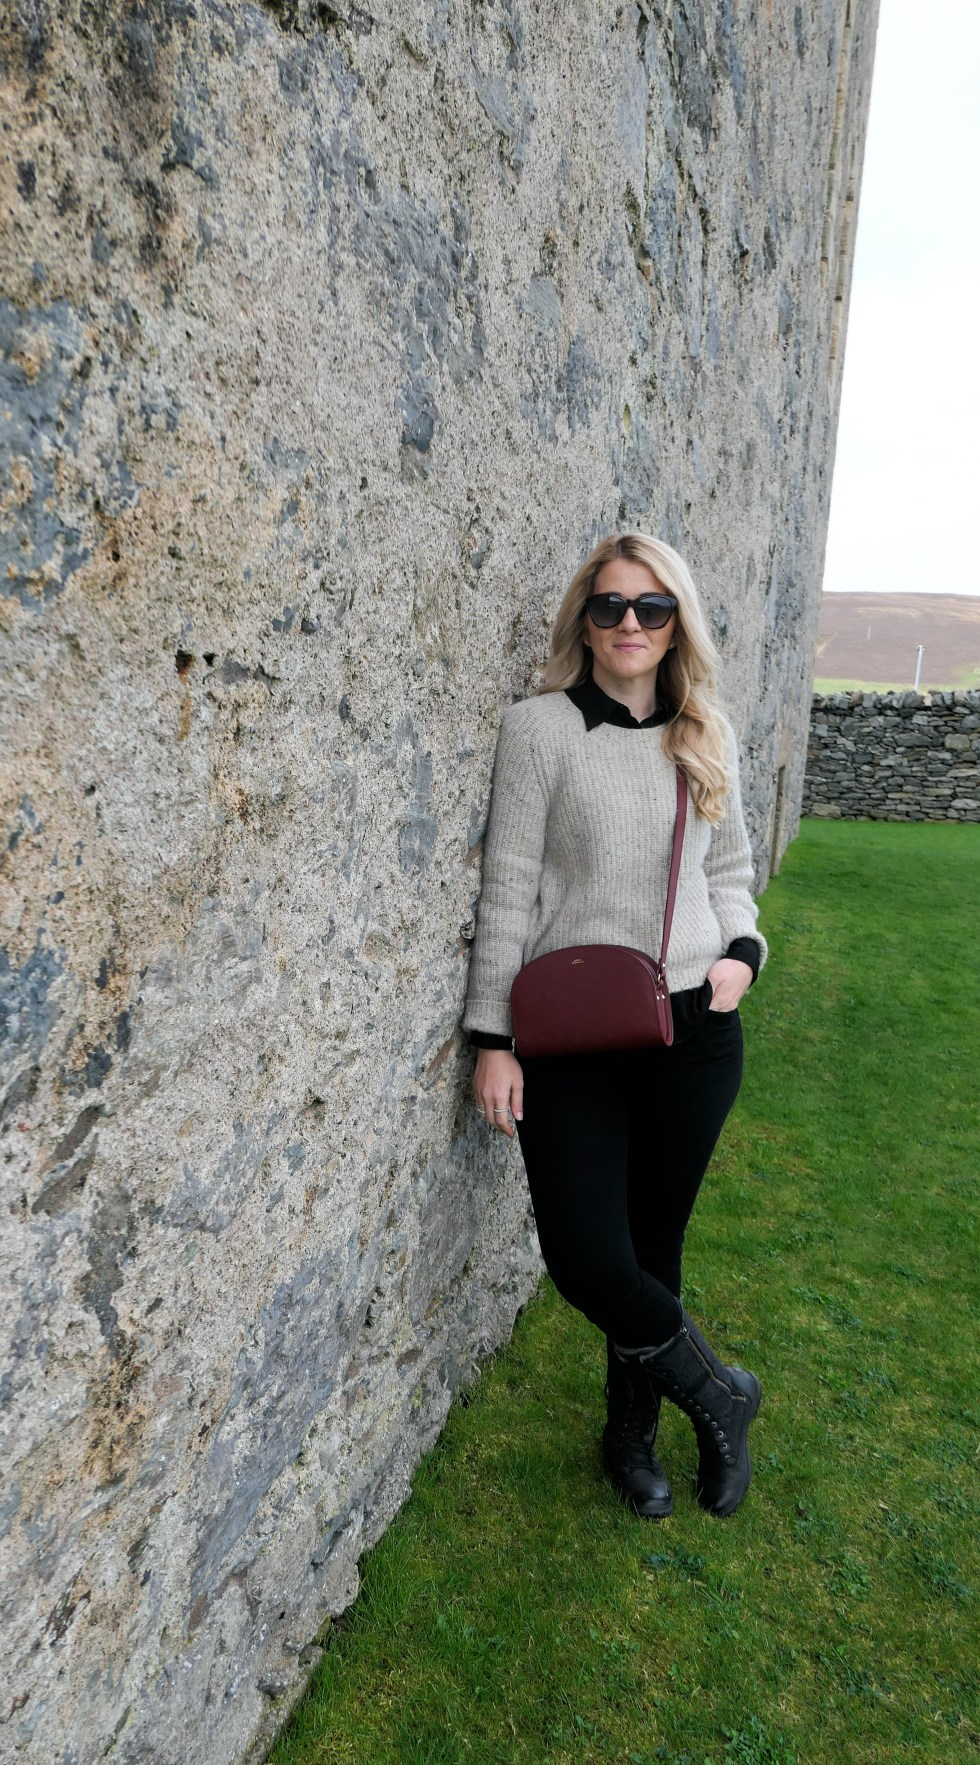 What to Wear in Scotland in Springtime. Edinburgh in April. What to wear to Shetland in April/May. #travel #travelblogger #springfashion #springstyle #ootd #scotland #whattowear